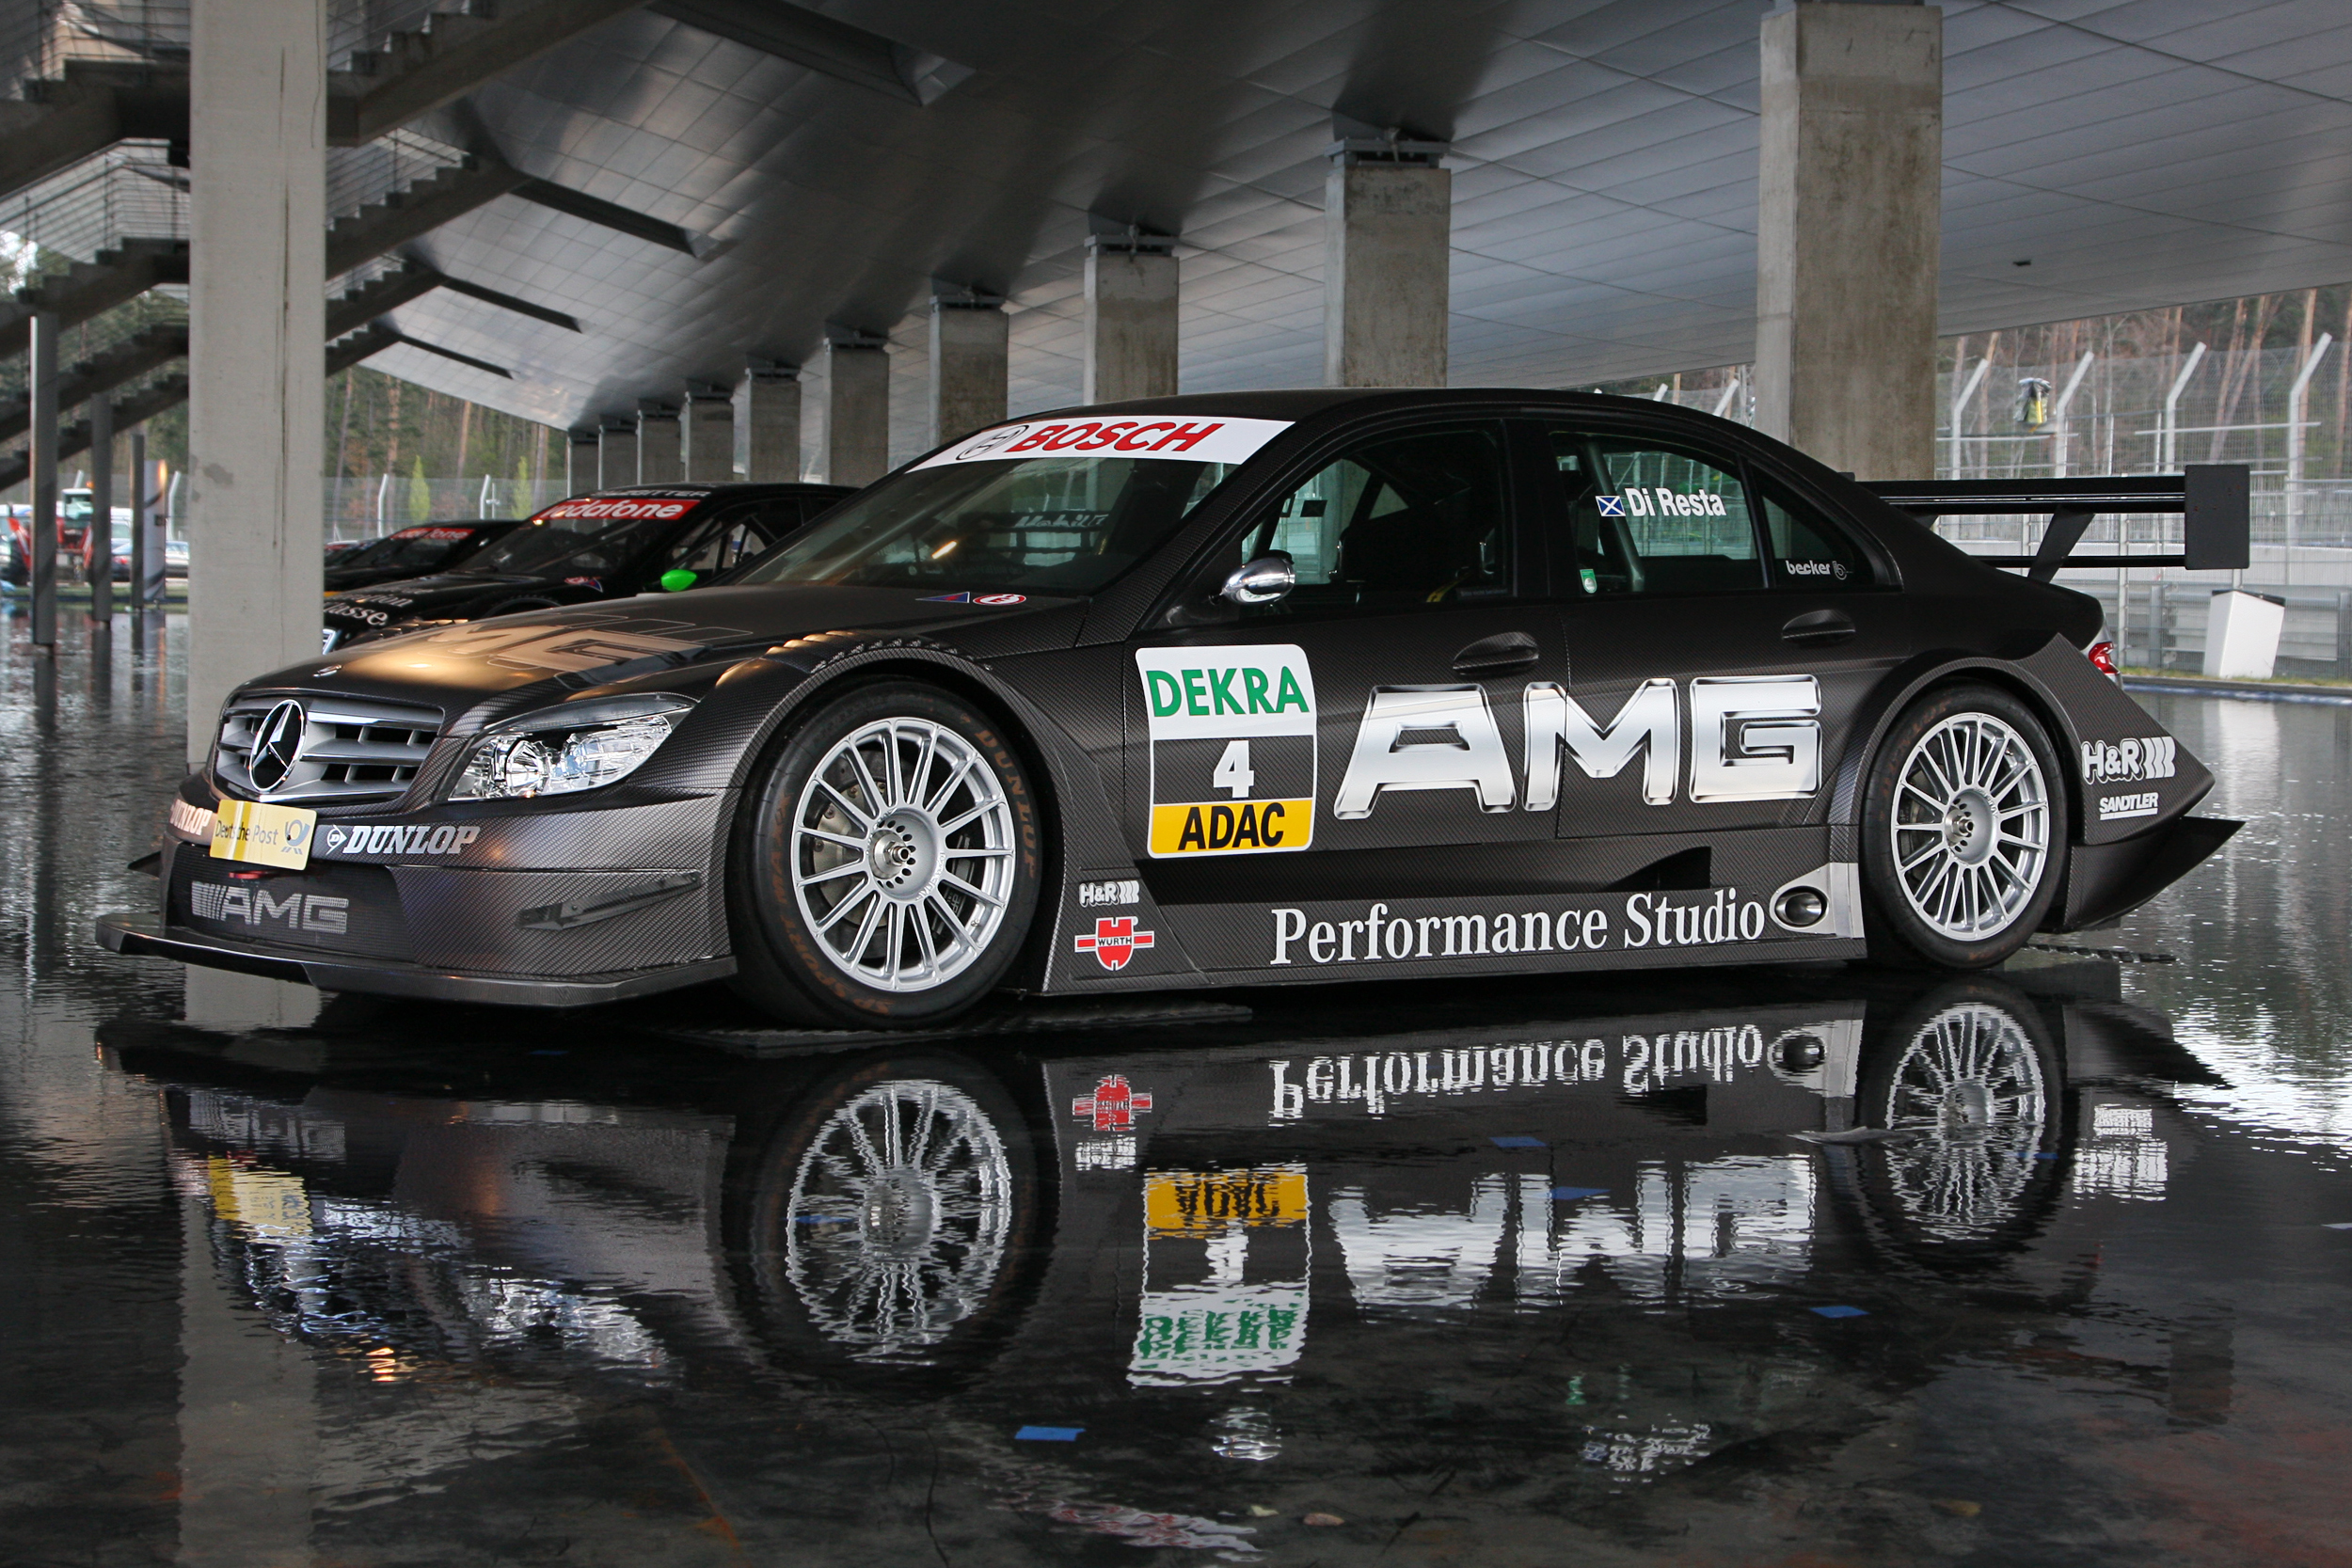 cars Mercedes benz dtm HD Wallpaper